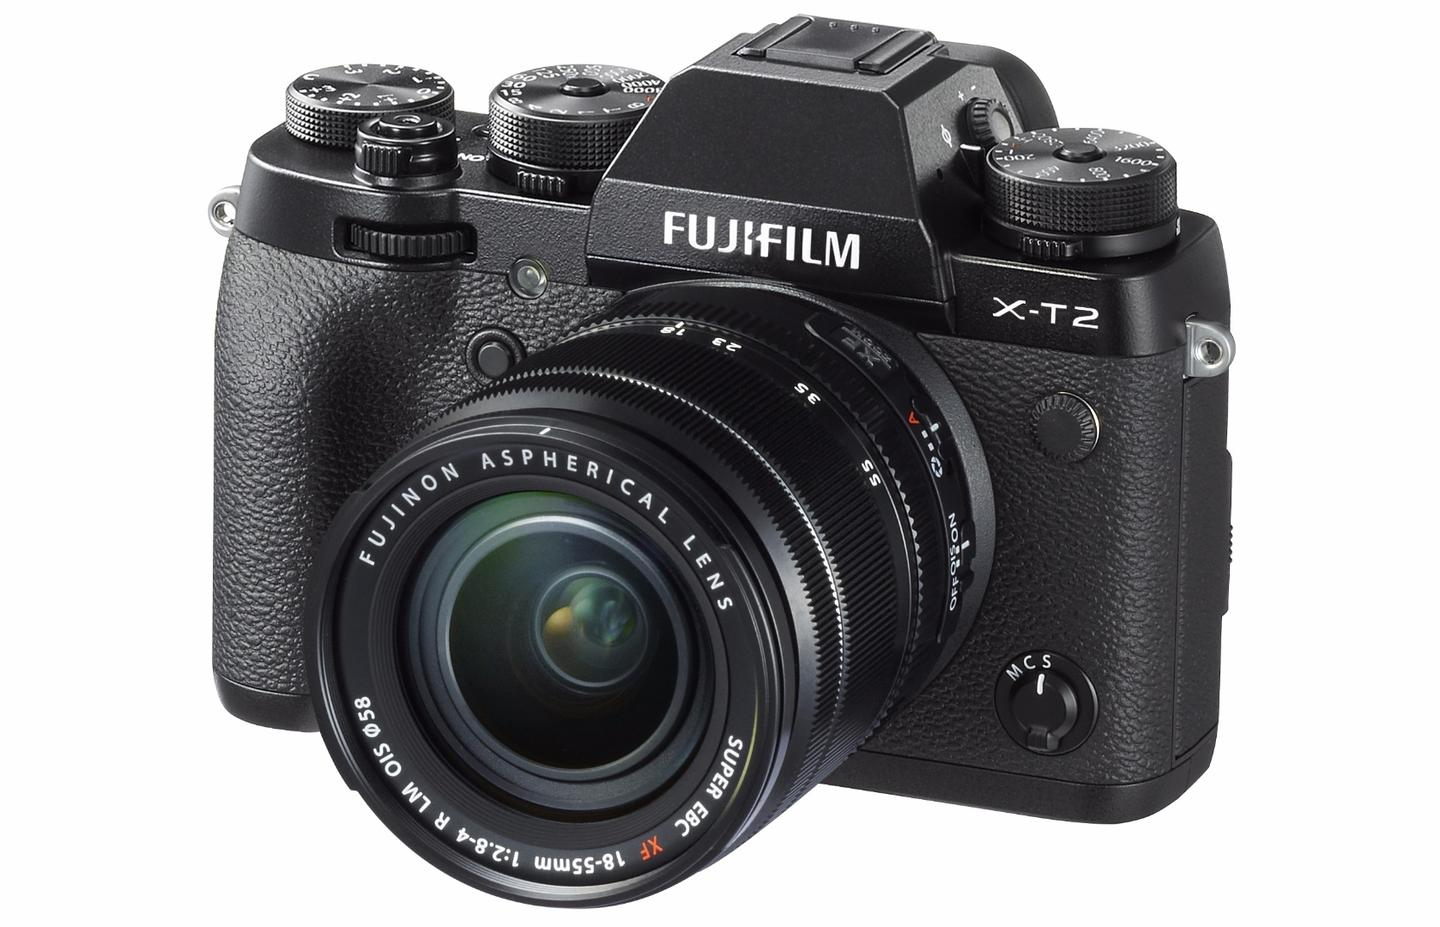 The Fujifilm X-T2 is a powerful mirrorless camera